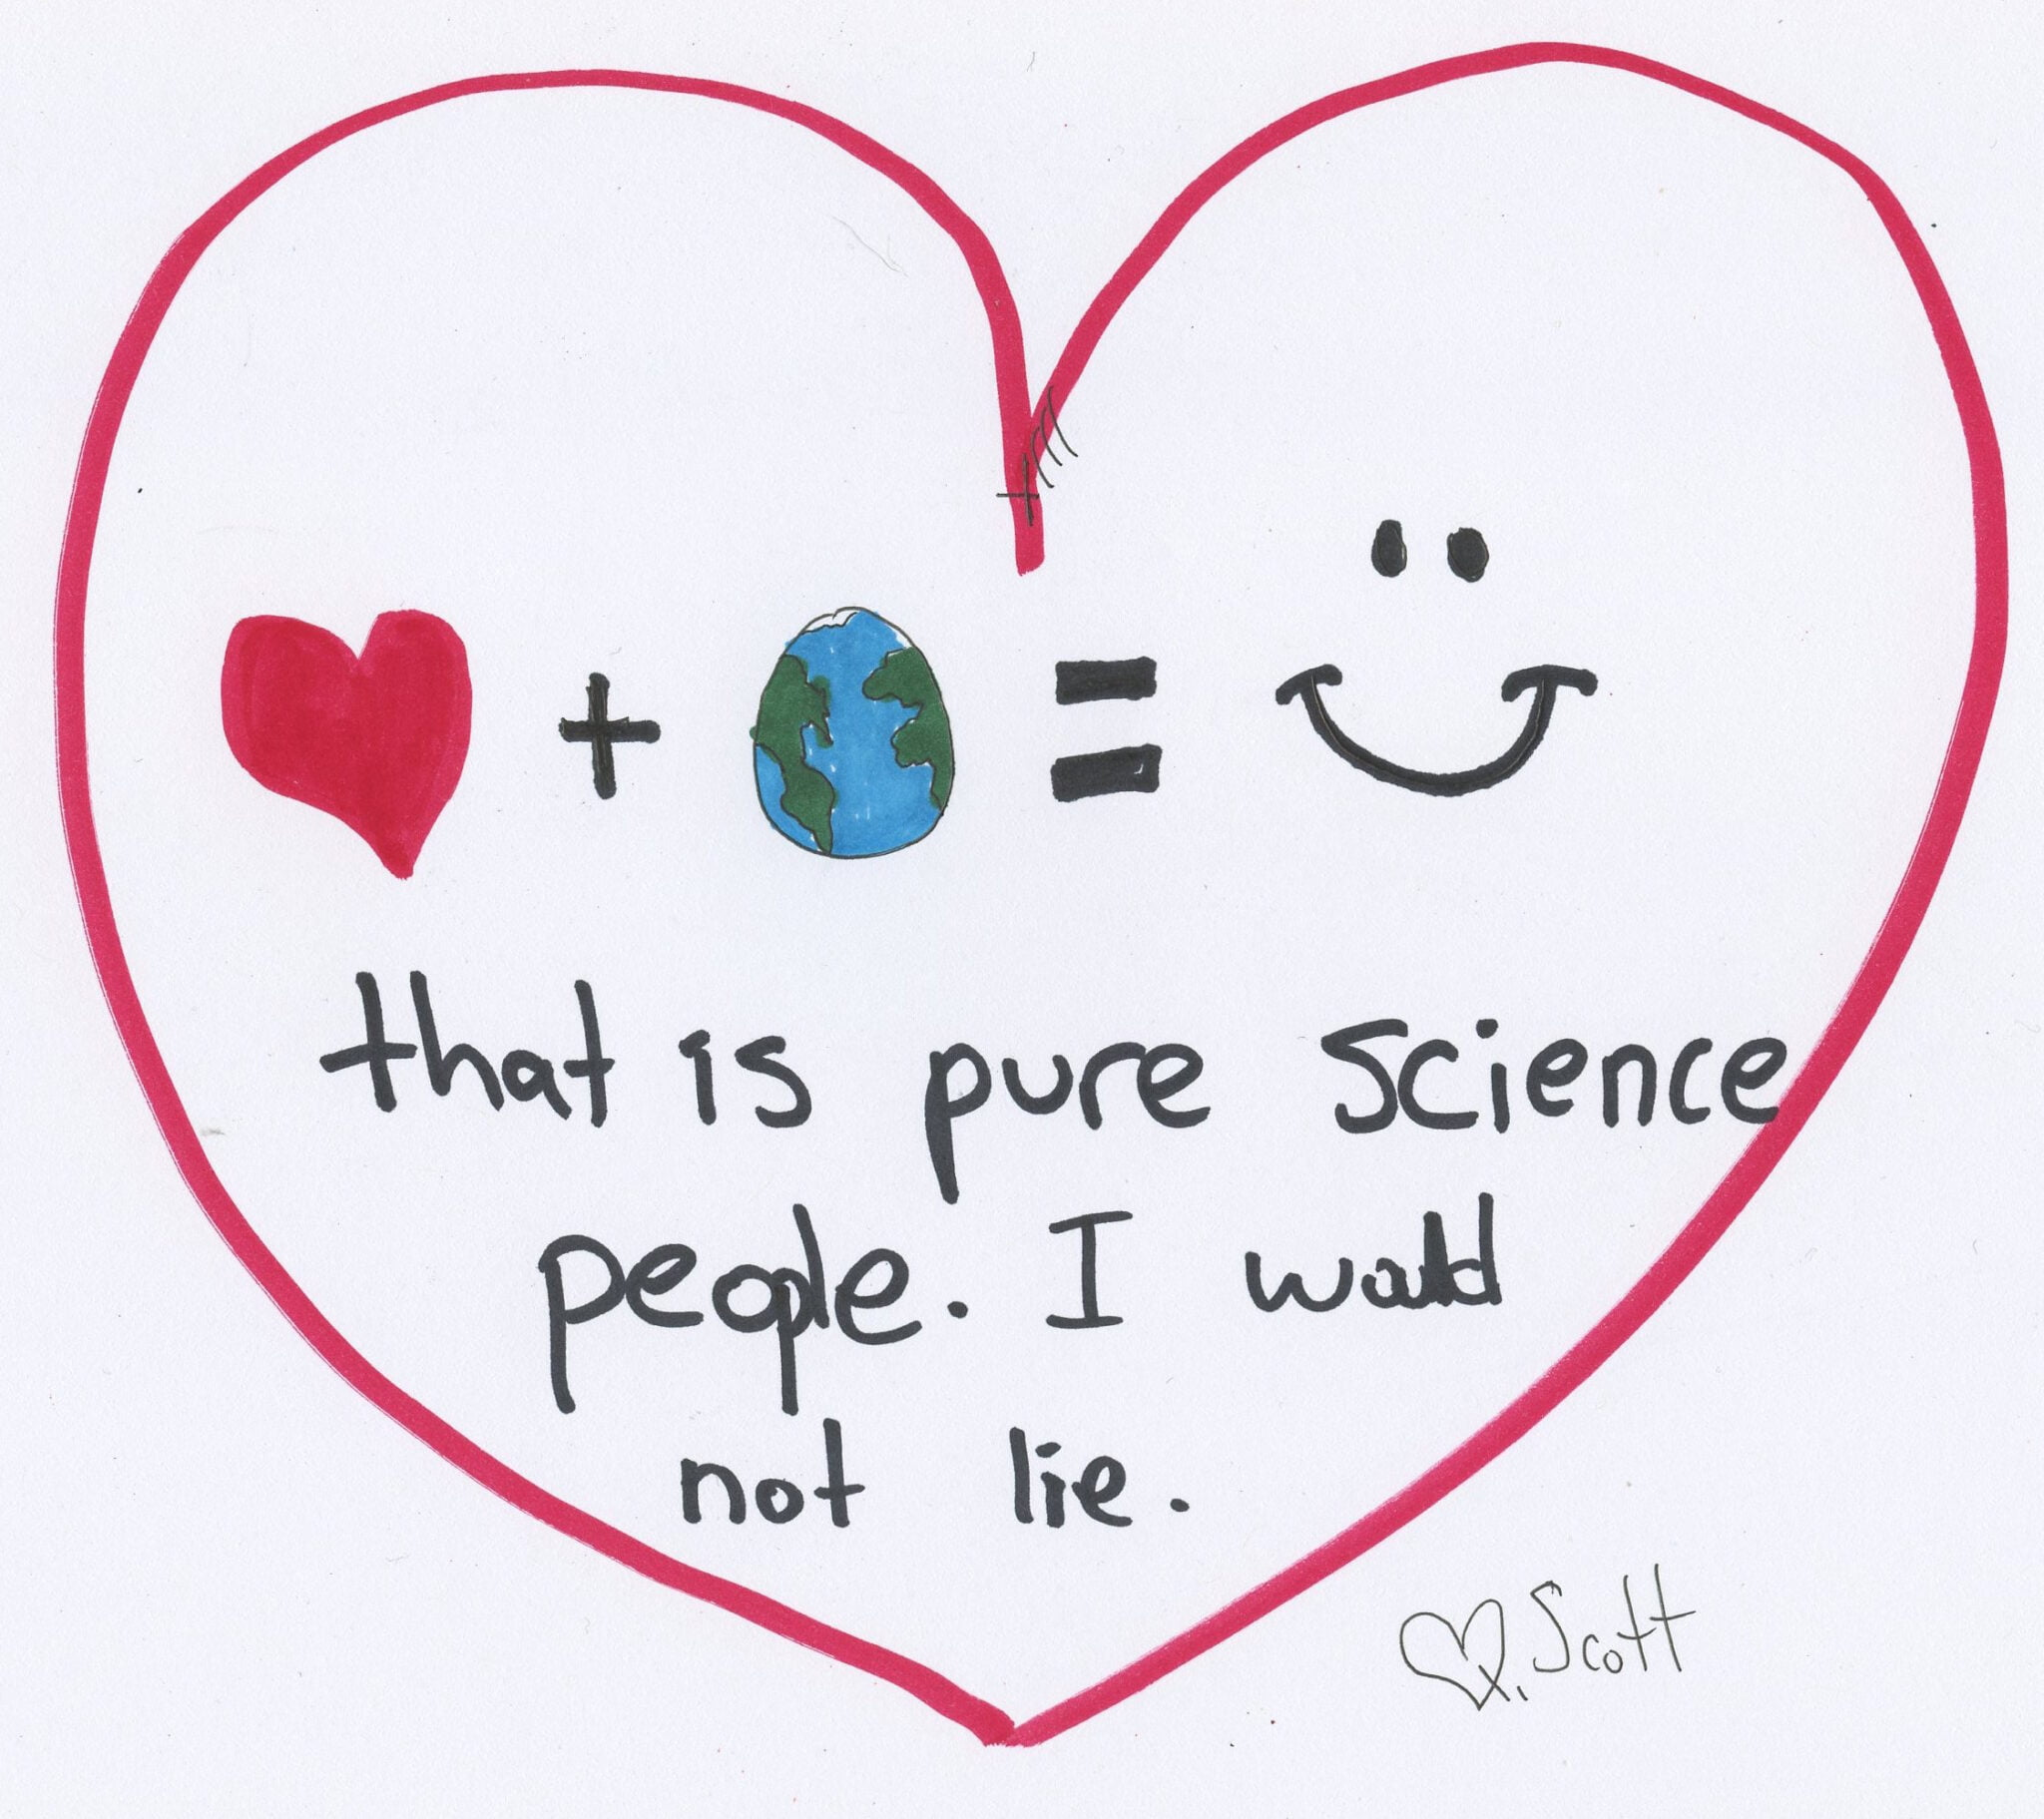 Love plus earth equals happiness. It's pure science people. I would not lie.